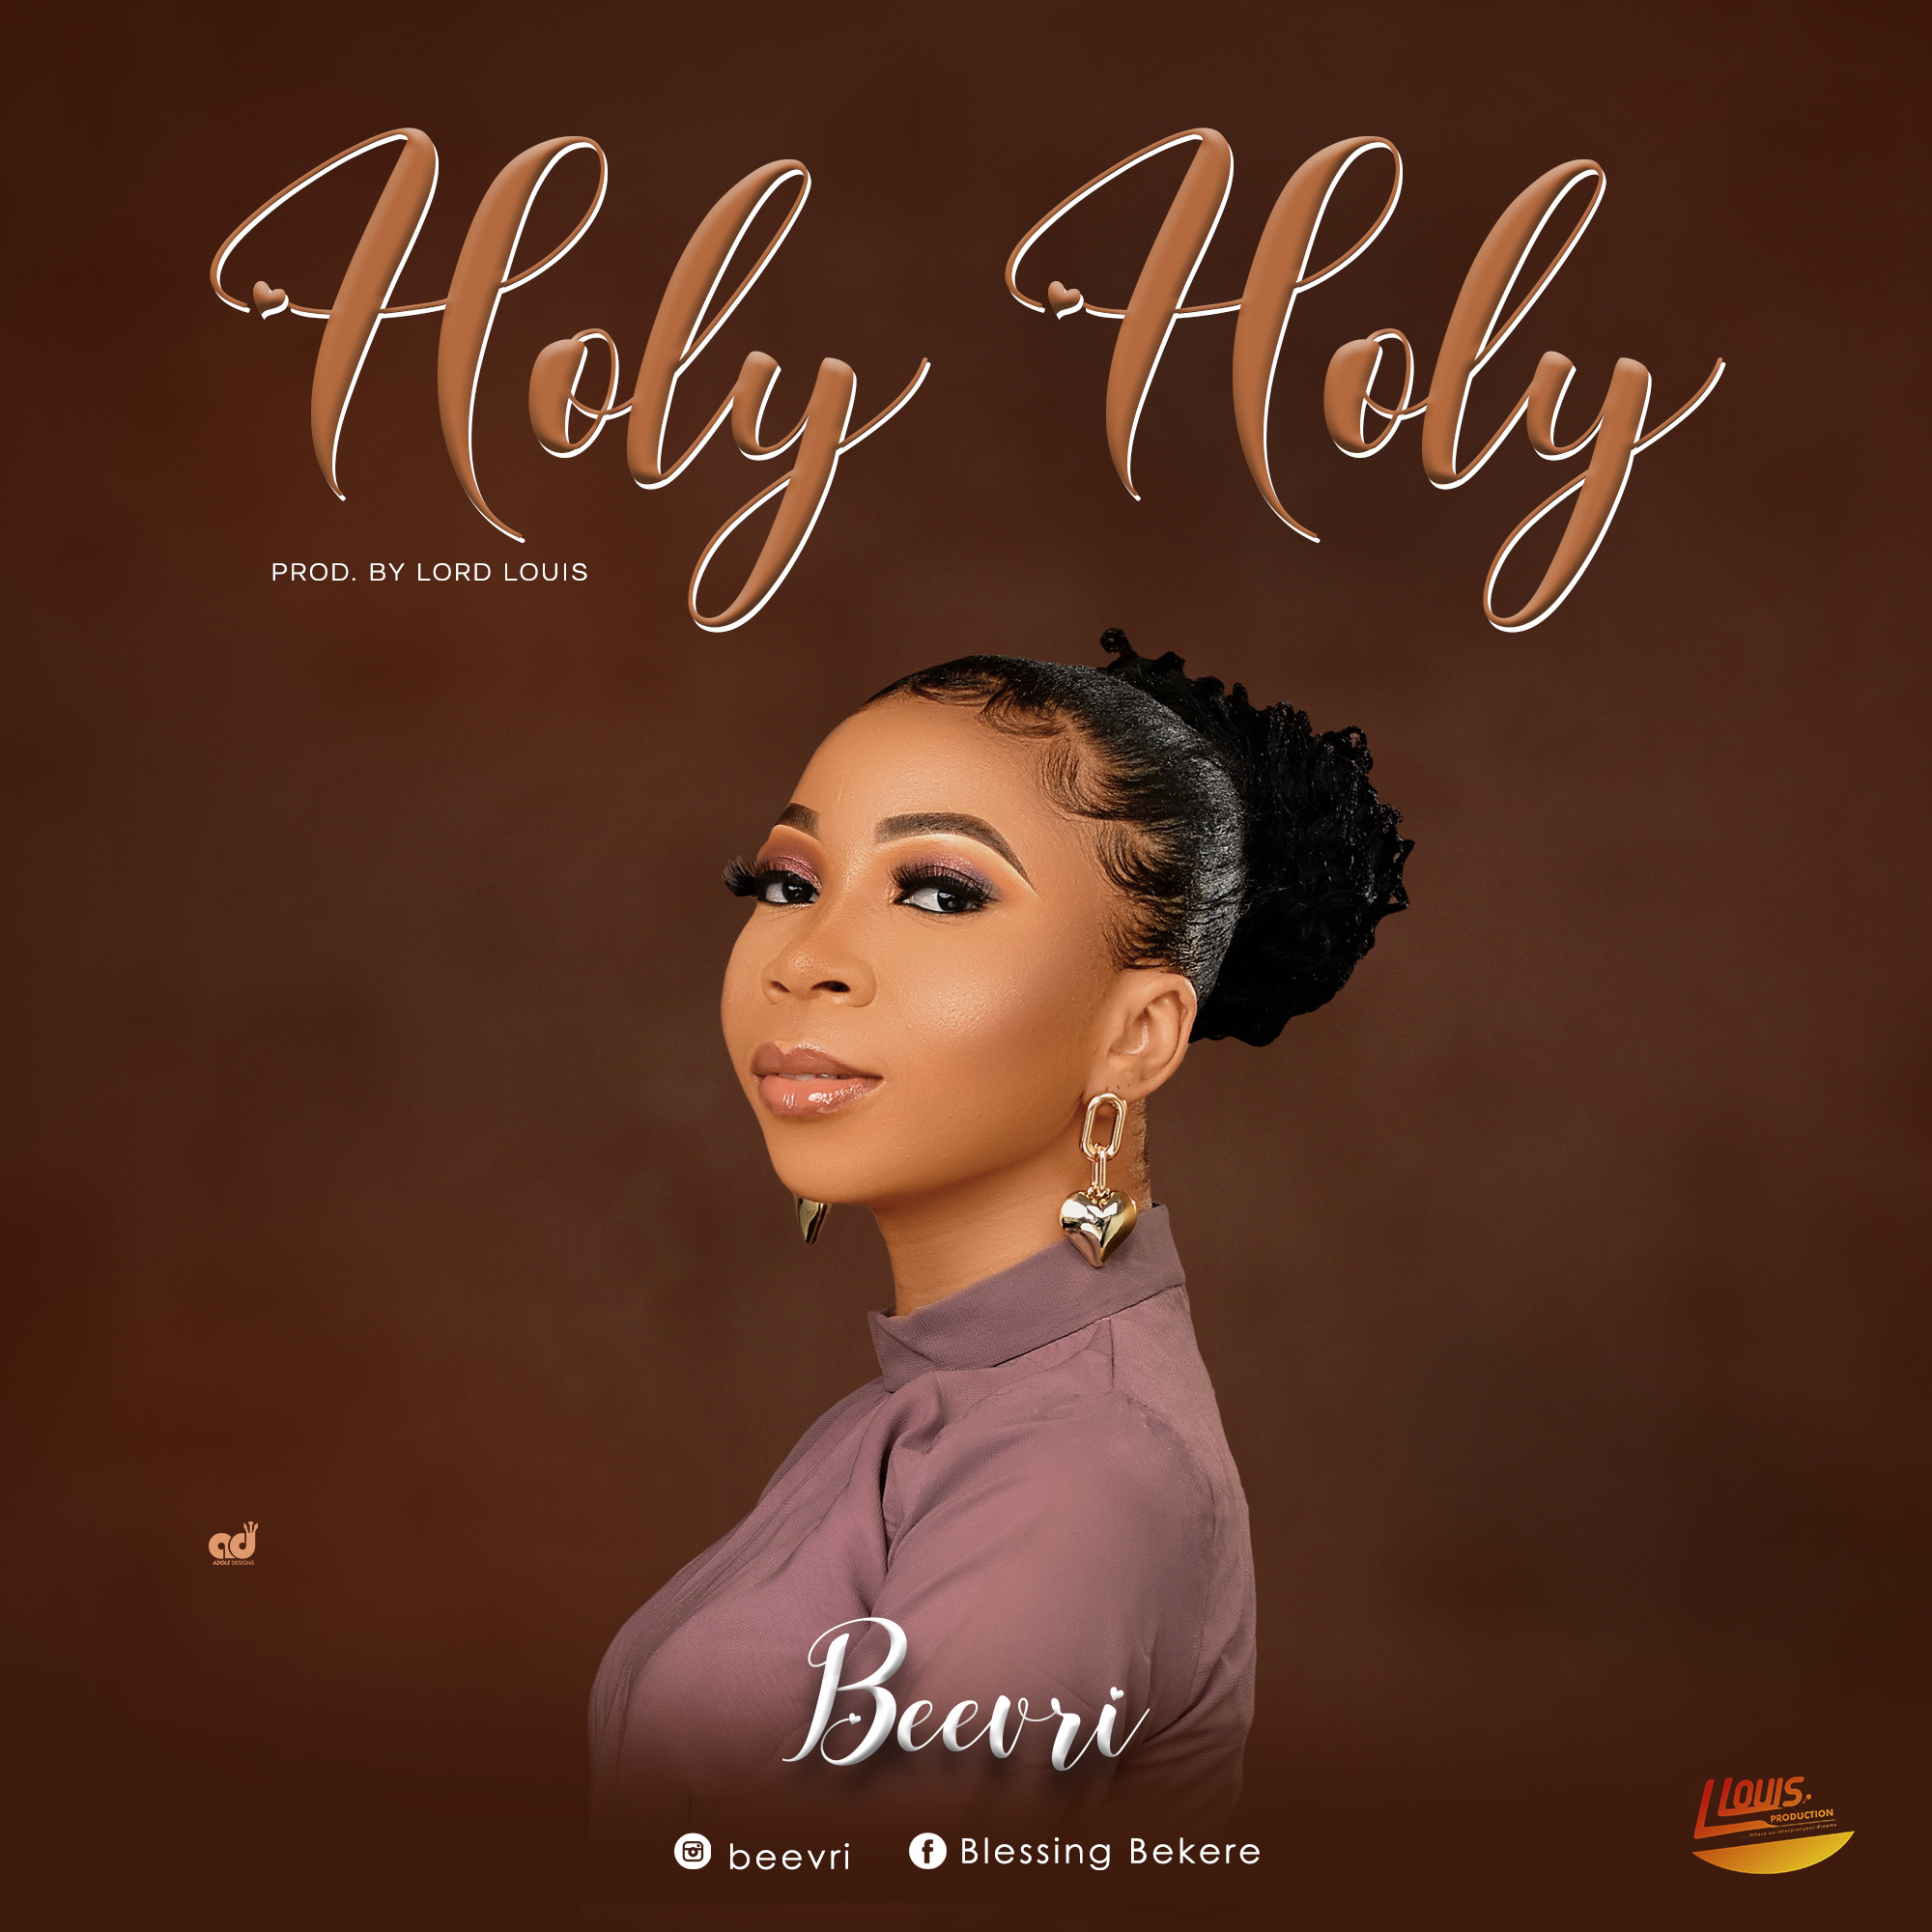 DOWNLOAD Music: Beevri – Holy Holy